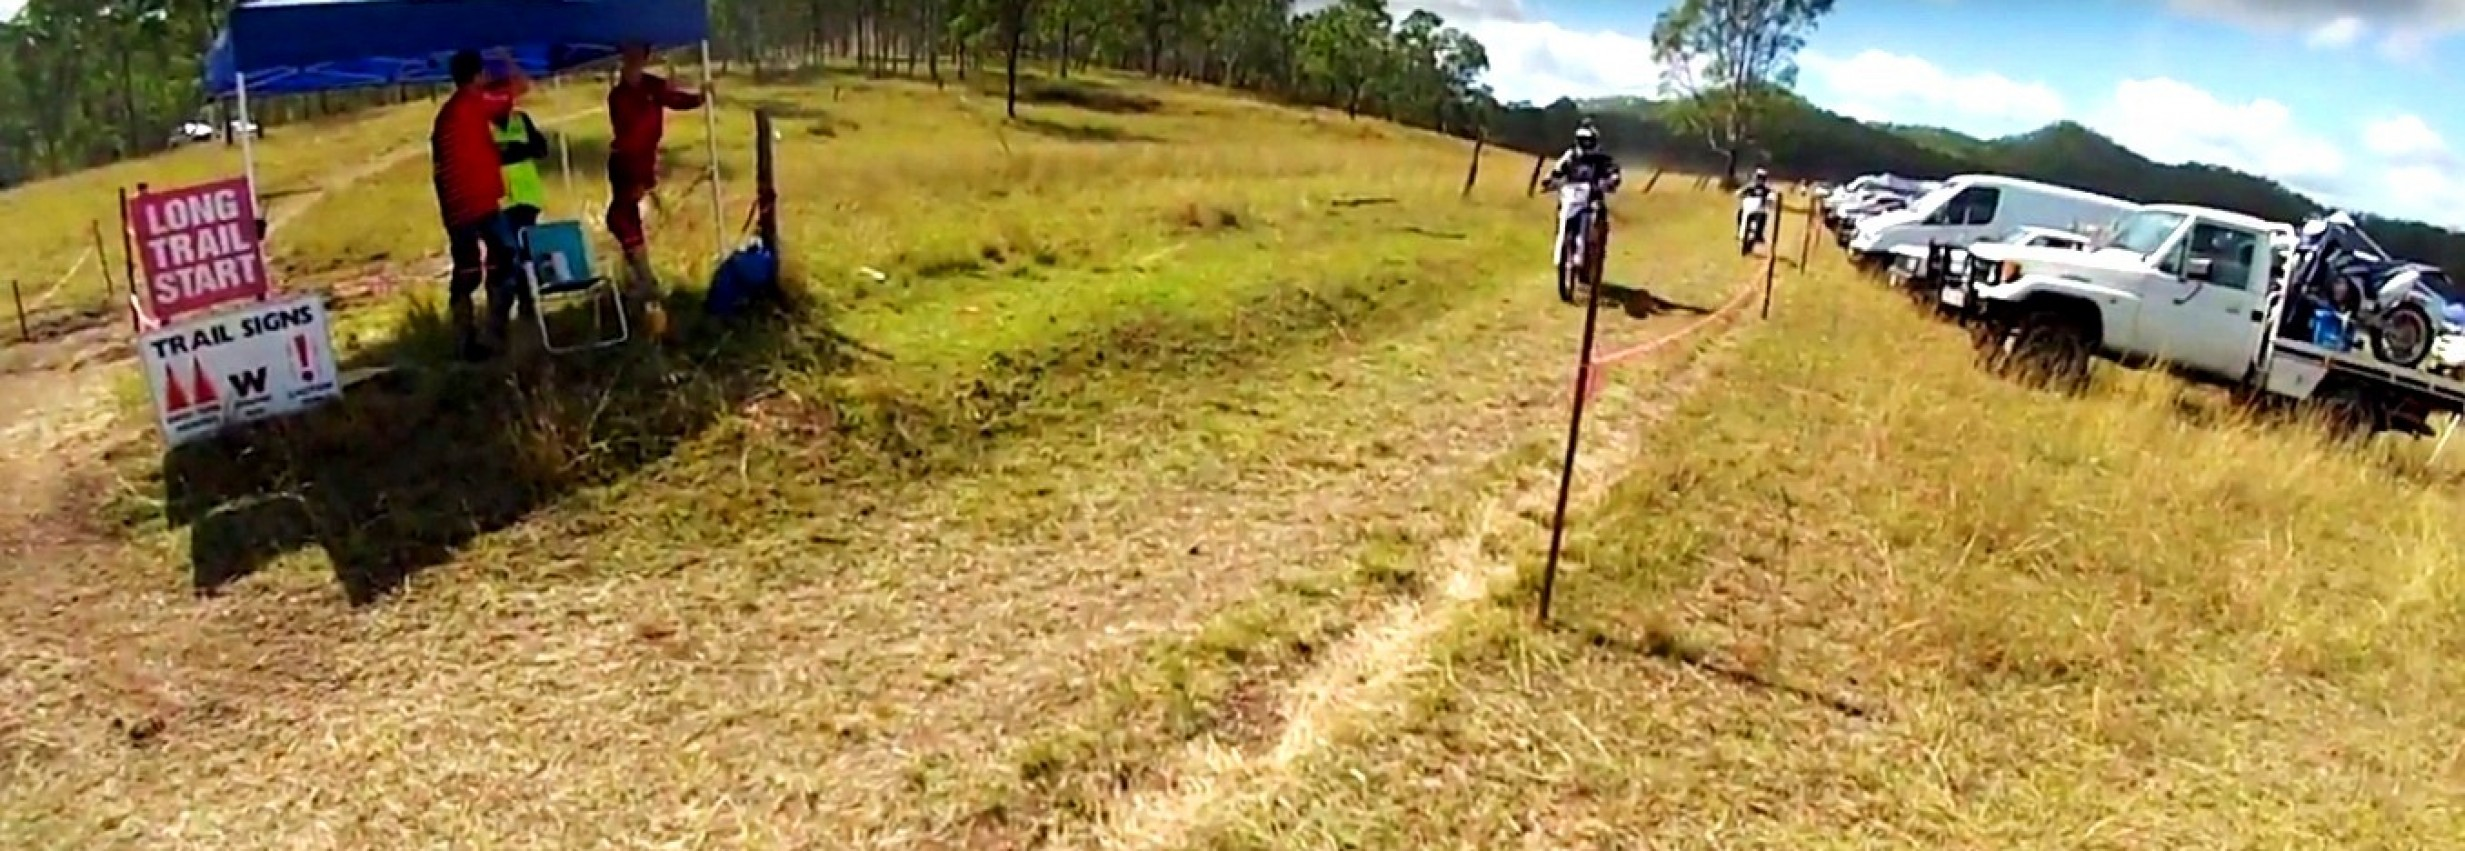 Reliability Trials Club of Brisbane Inc.